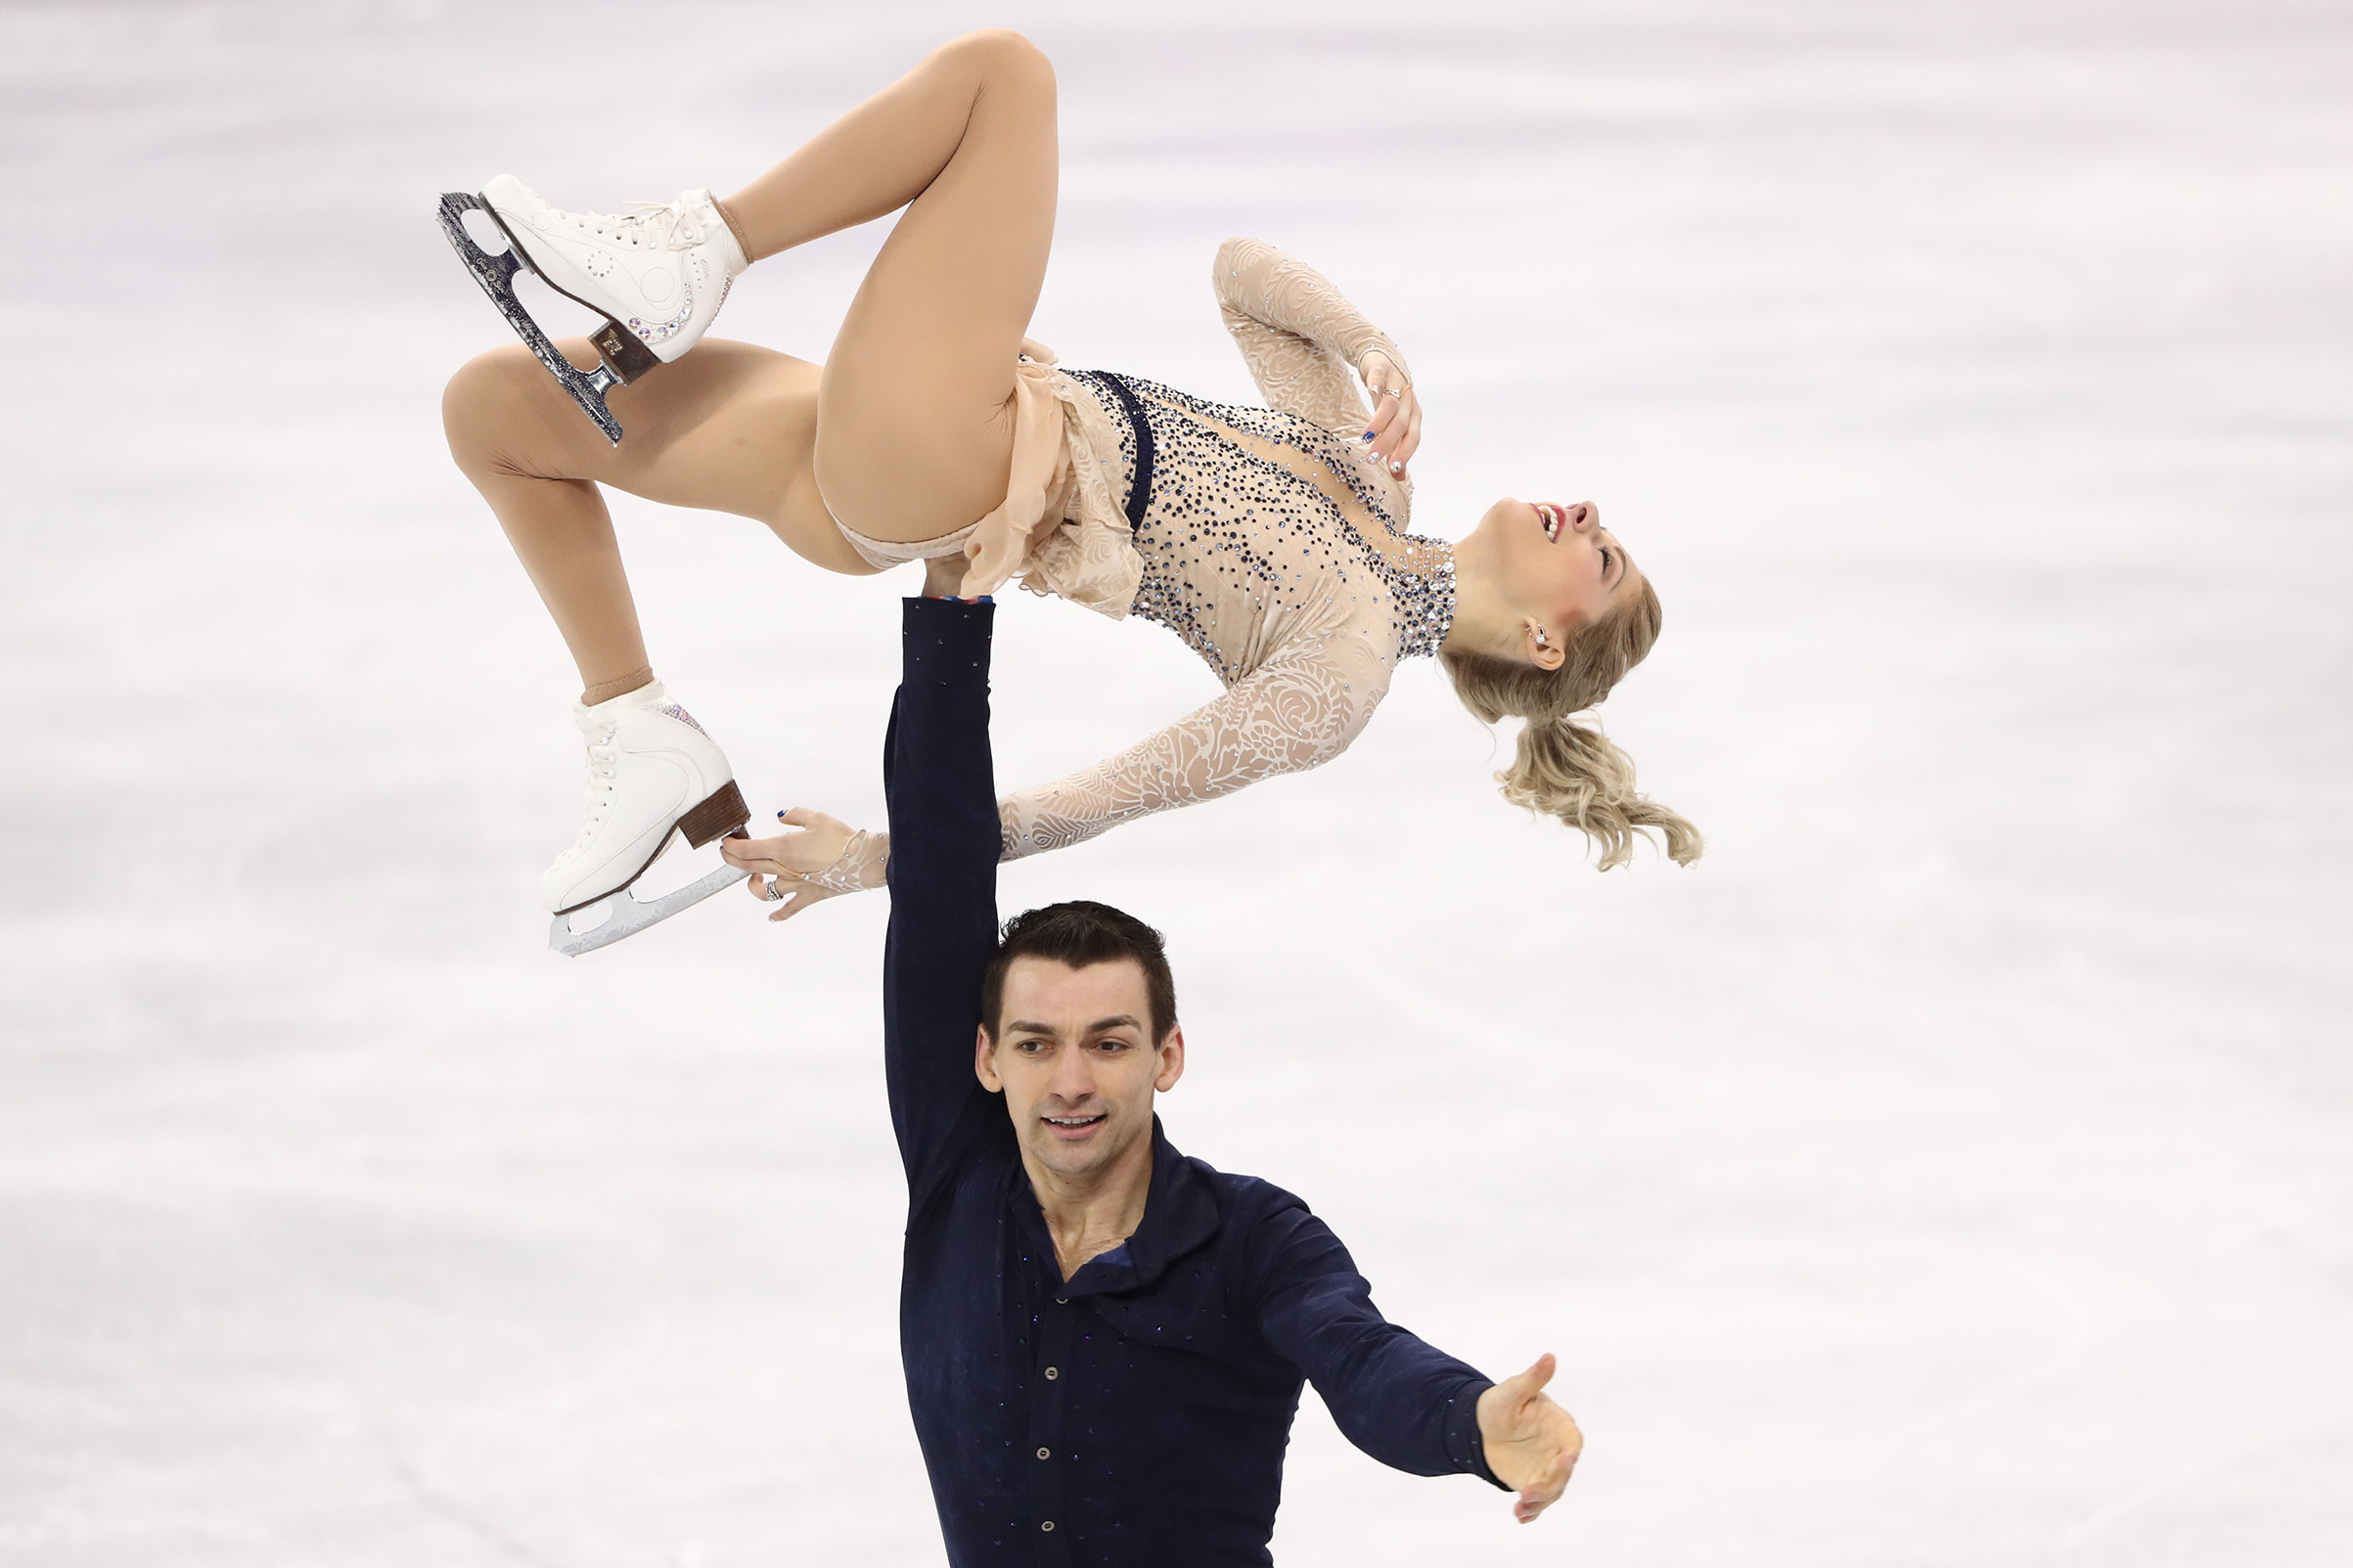 Pair skaters Alexa Scimeca Knierim and Chris Knierim of the USA perform their short program during a figure skating event at the 2018 Winter Olympic Games at Gangneung Ice Arena.